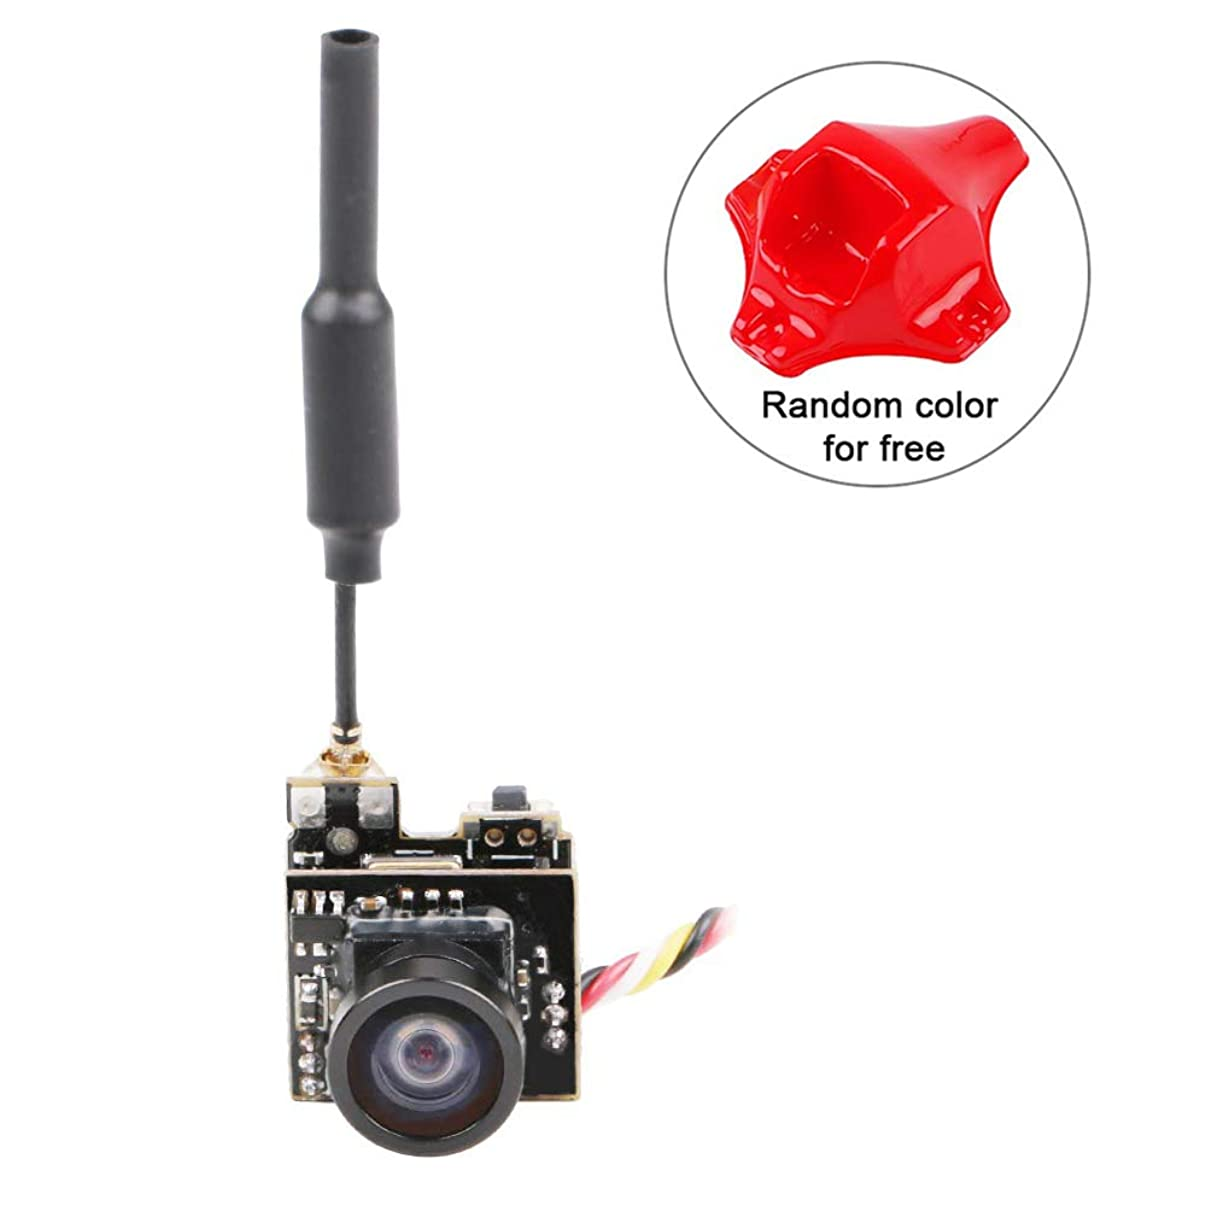 Crazepony FPV Micro AIO Camera 5.8G 40CH 25mW Video Transmitter VTX Switchable Raceband Support OSD FOV 150°for FPV Drone Like Blade Inductrix Tiny Whoop etc